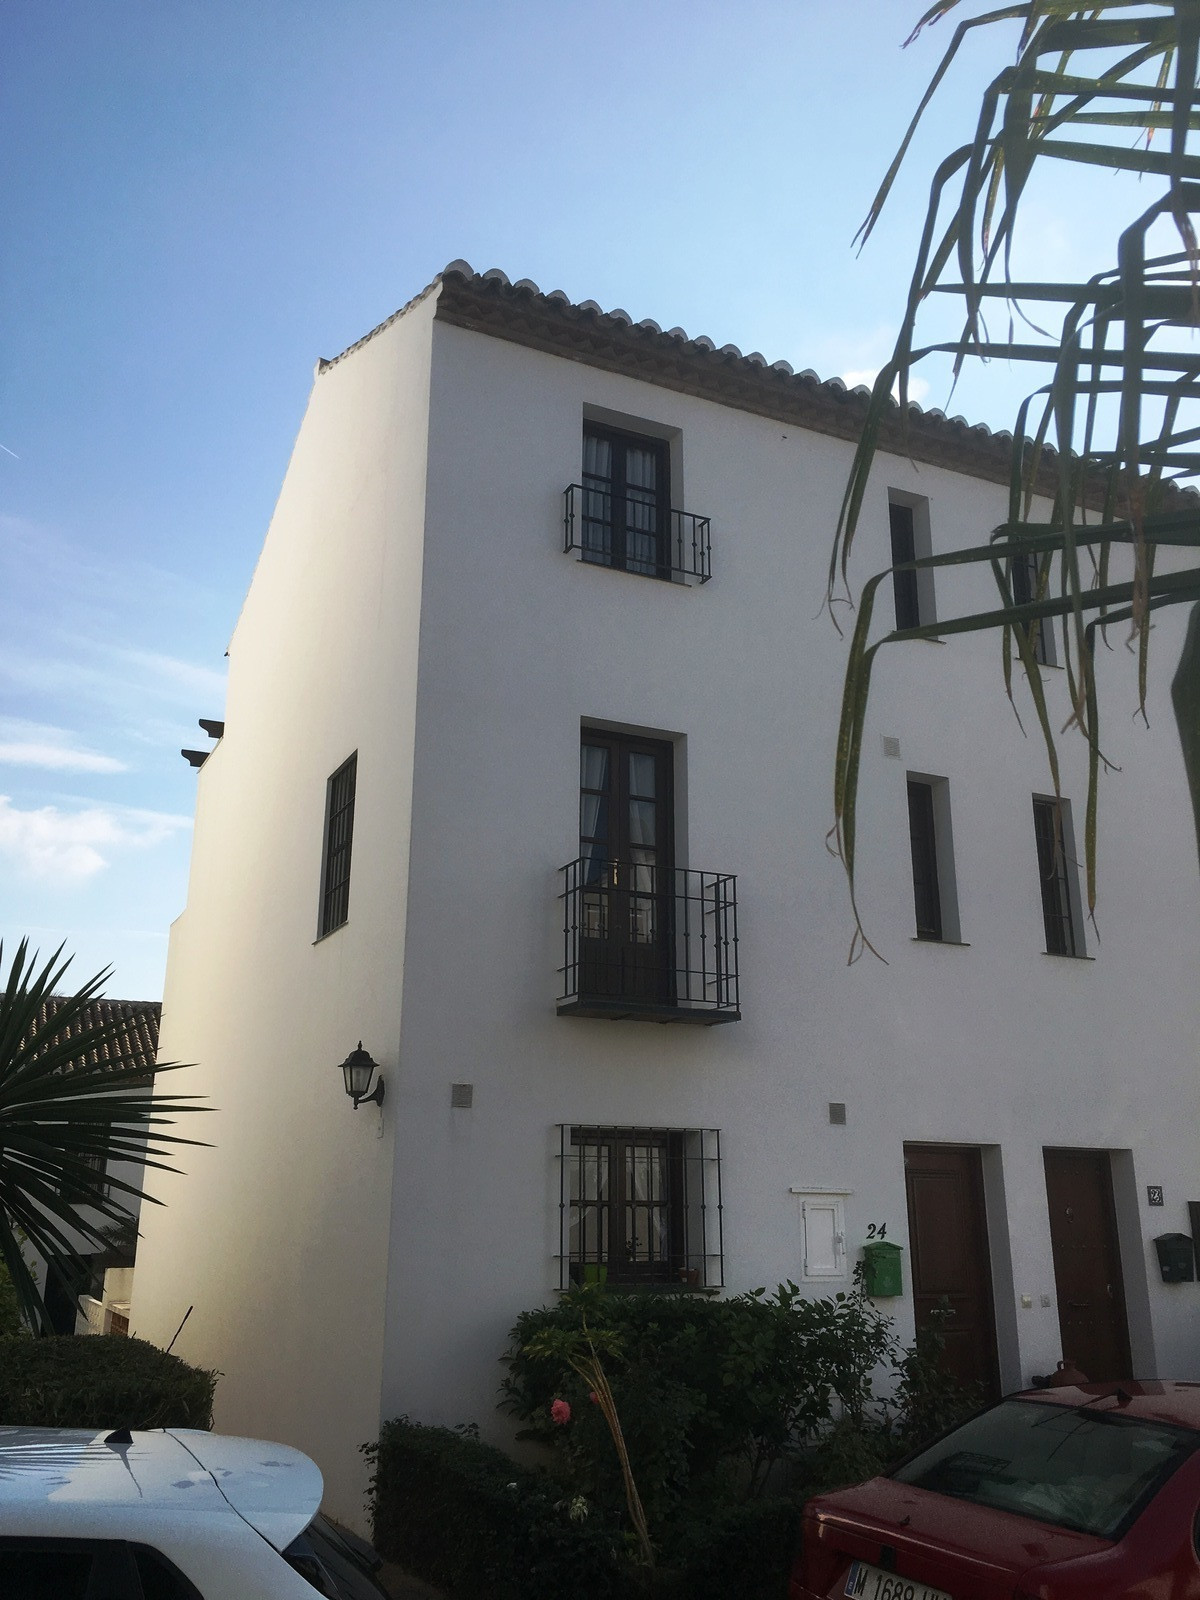 Mijas Golf three bedroom townhouse built over three levels and located in a quiet private cul-de-sac, Spain